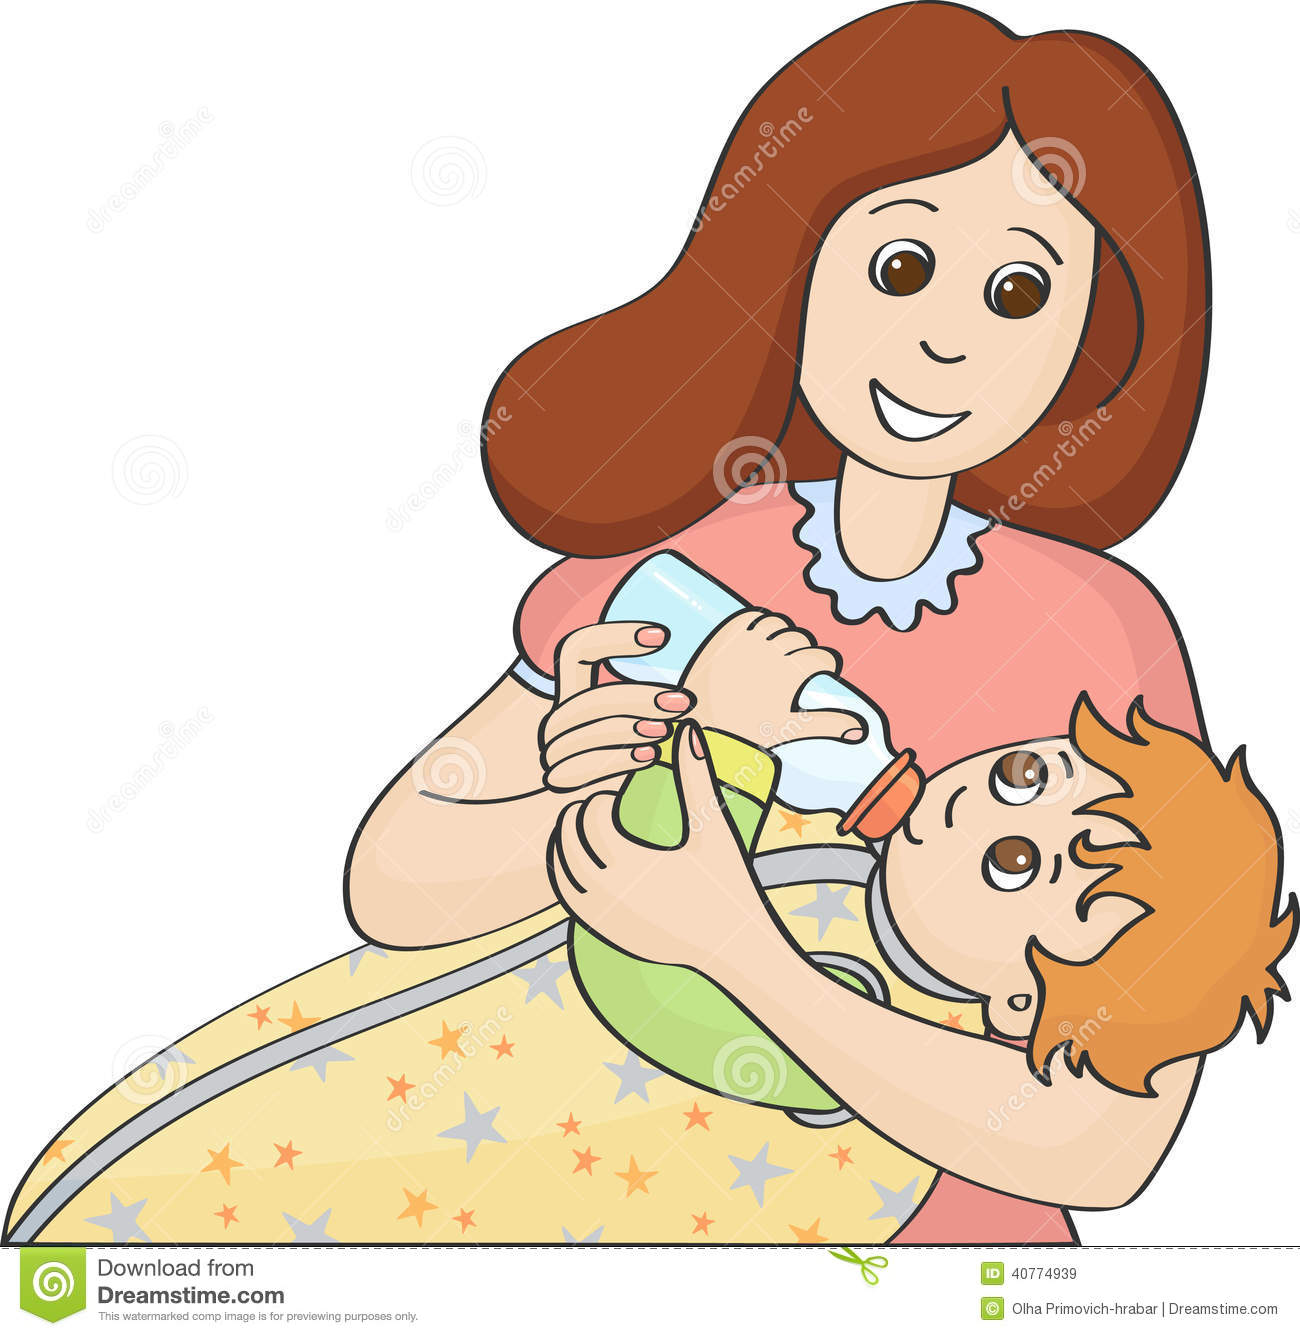 baby eating clipart - photo #34